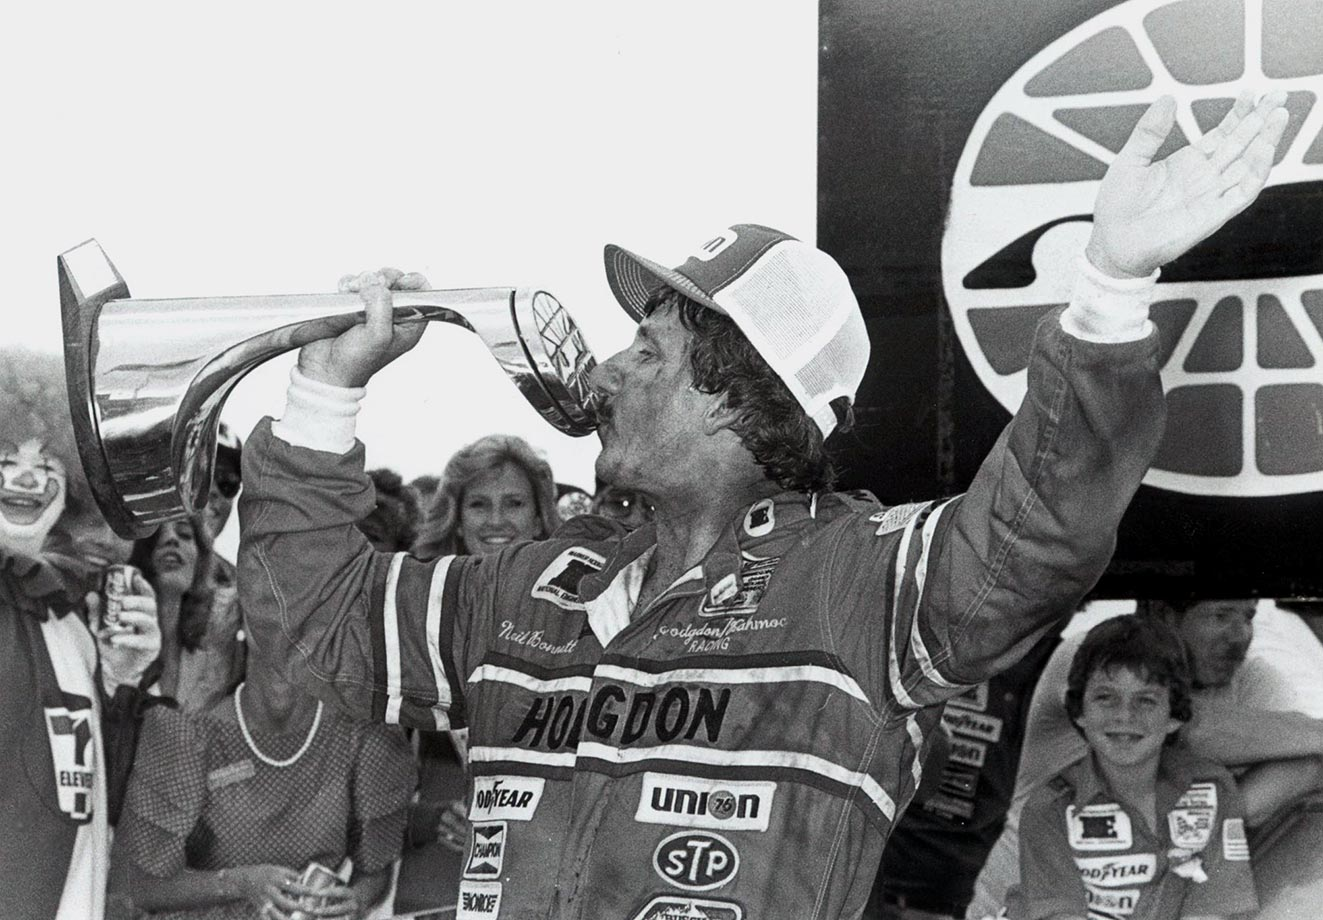 Neil Bonnett won back-to-back years in Charlotte, having also captured the title in 1982.